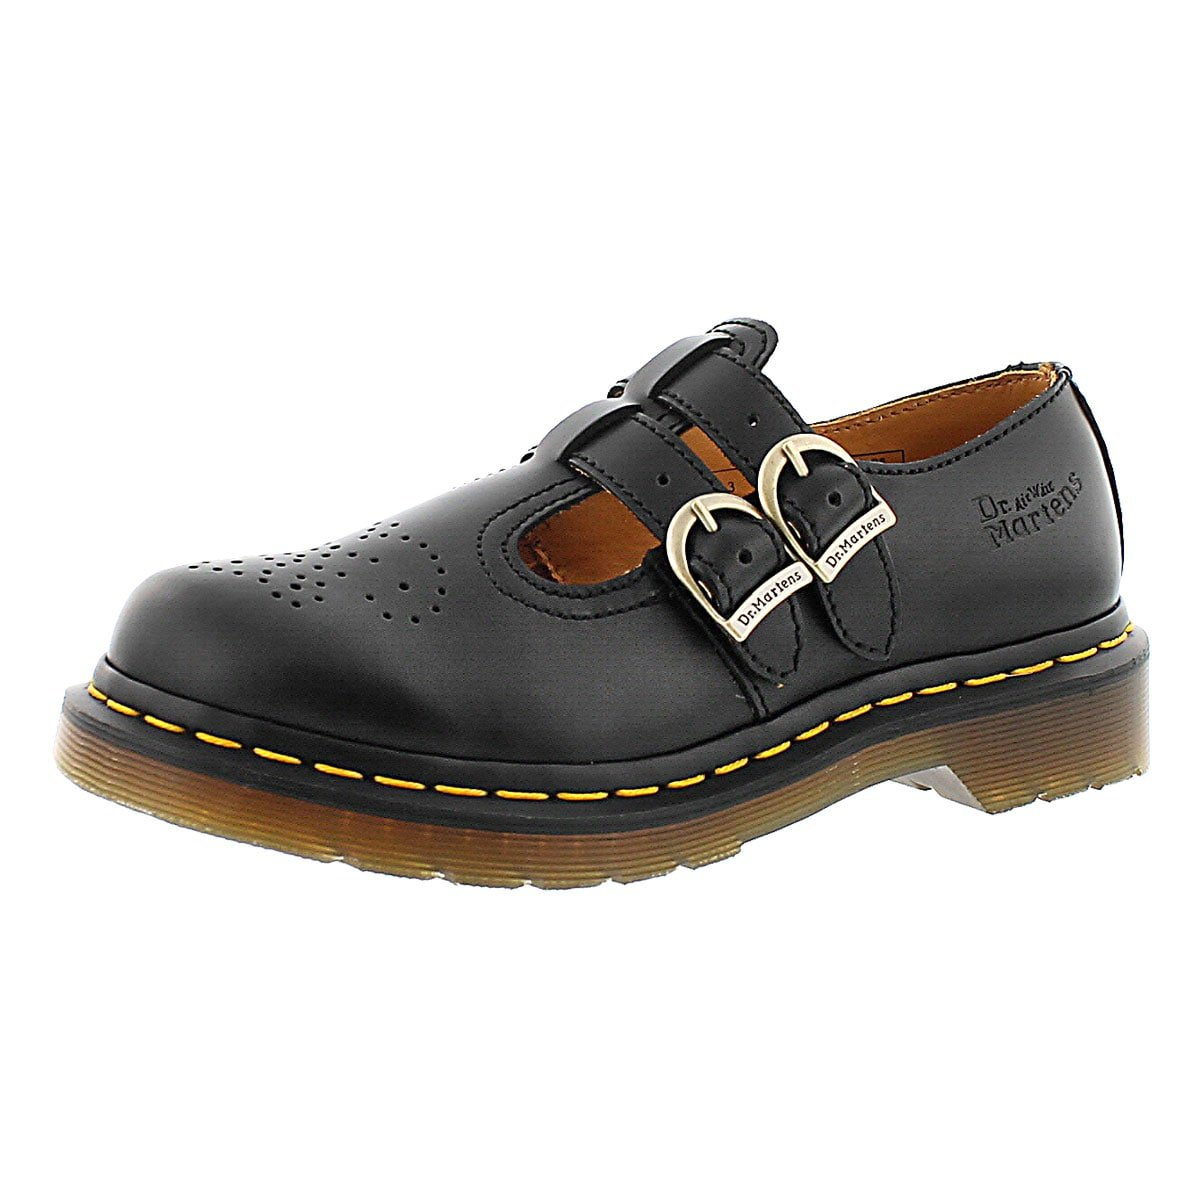 Dr. Martens Women's 8065 Mary Jane Black Ankle-High Flat - 8M